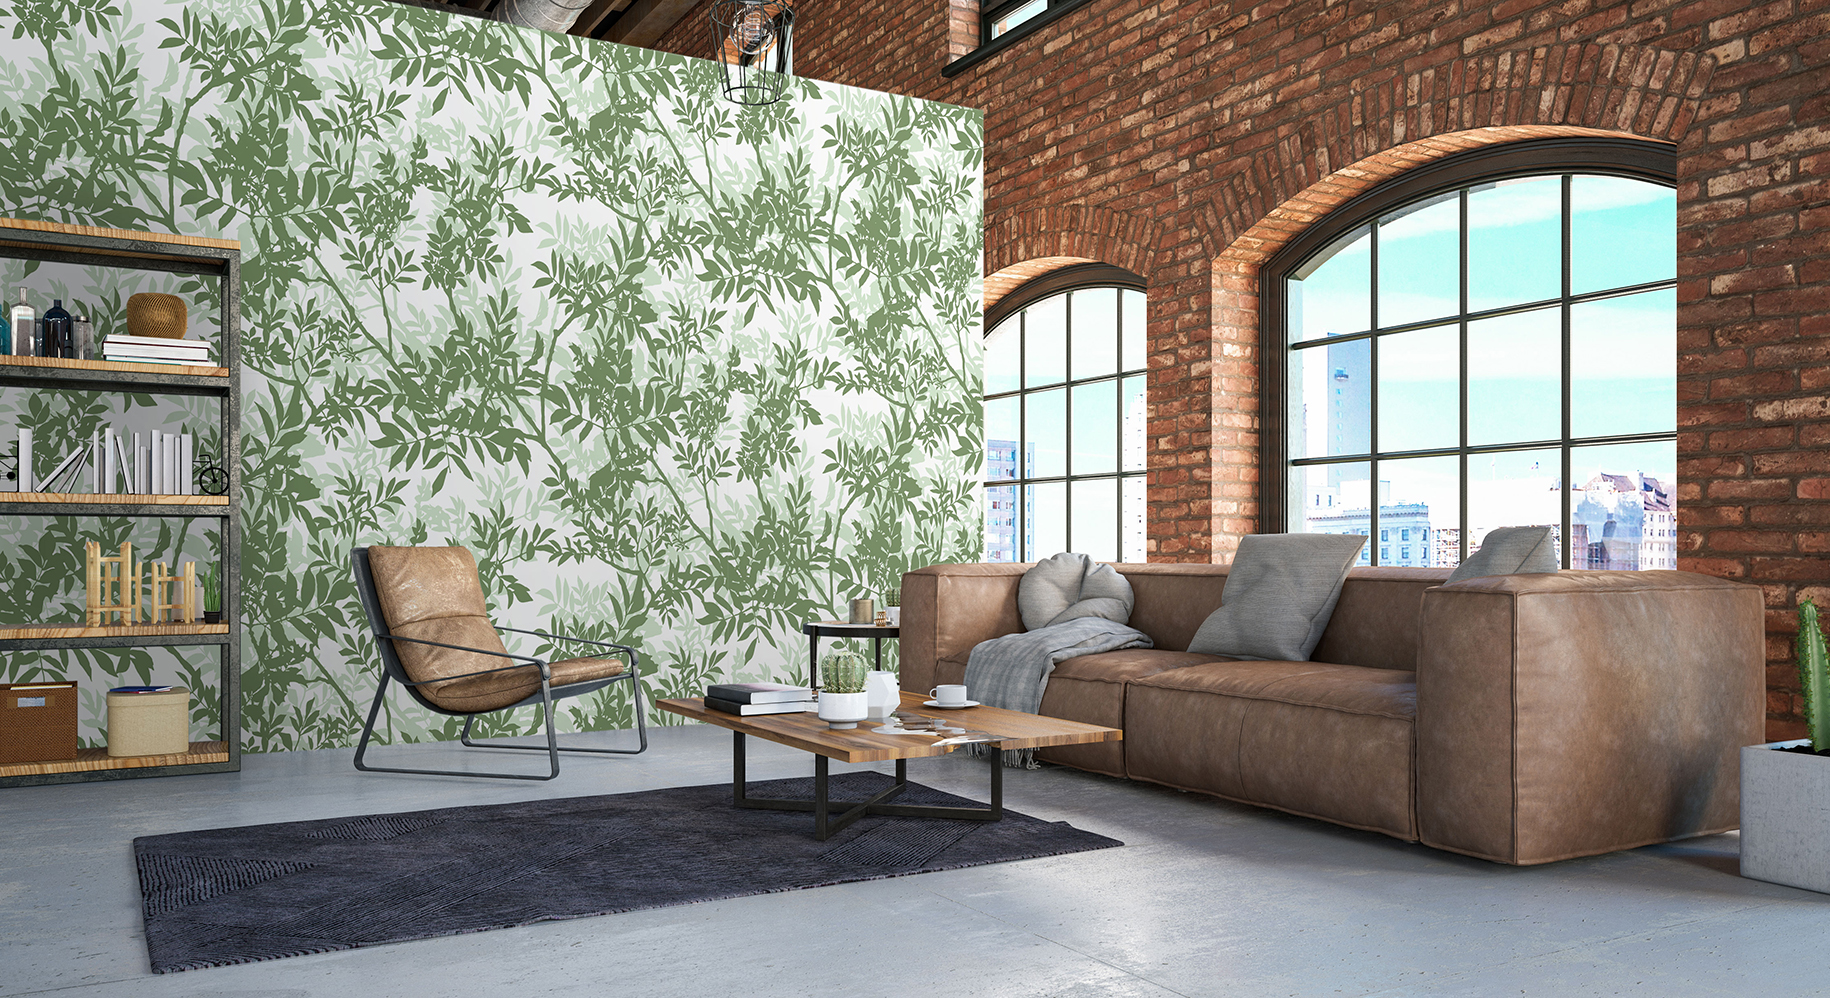 Exclusive wallpaper designs - see our collections